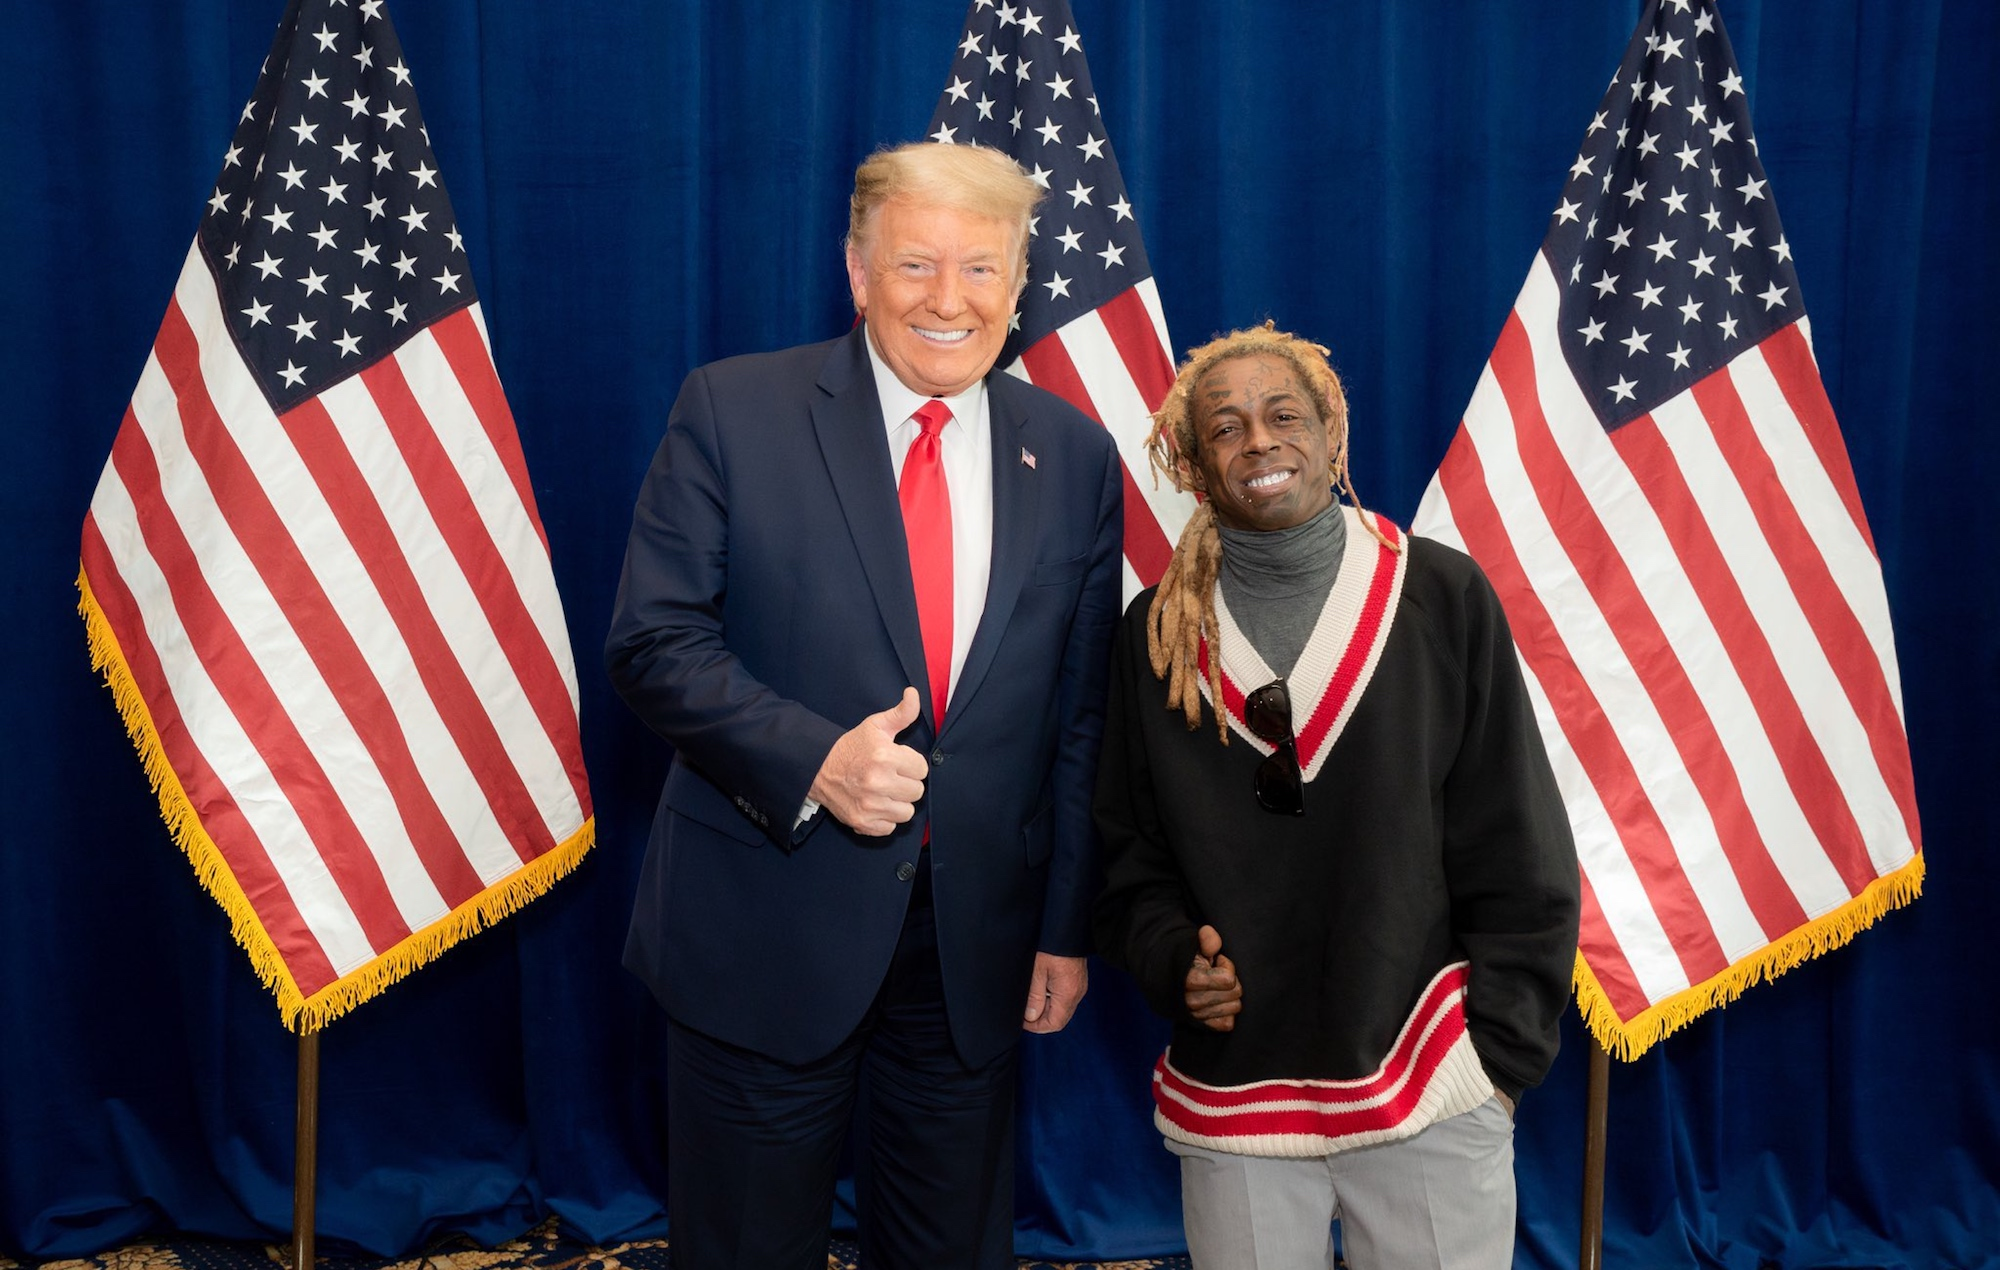 Lil Wayne expected to receive pardon from Trump before he leaves office